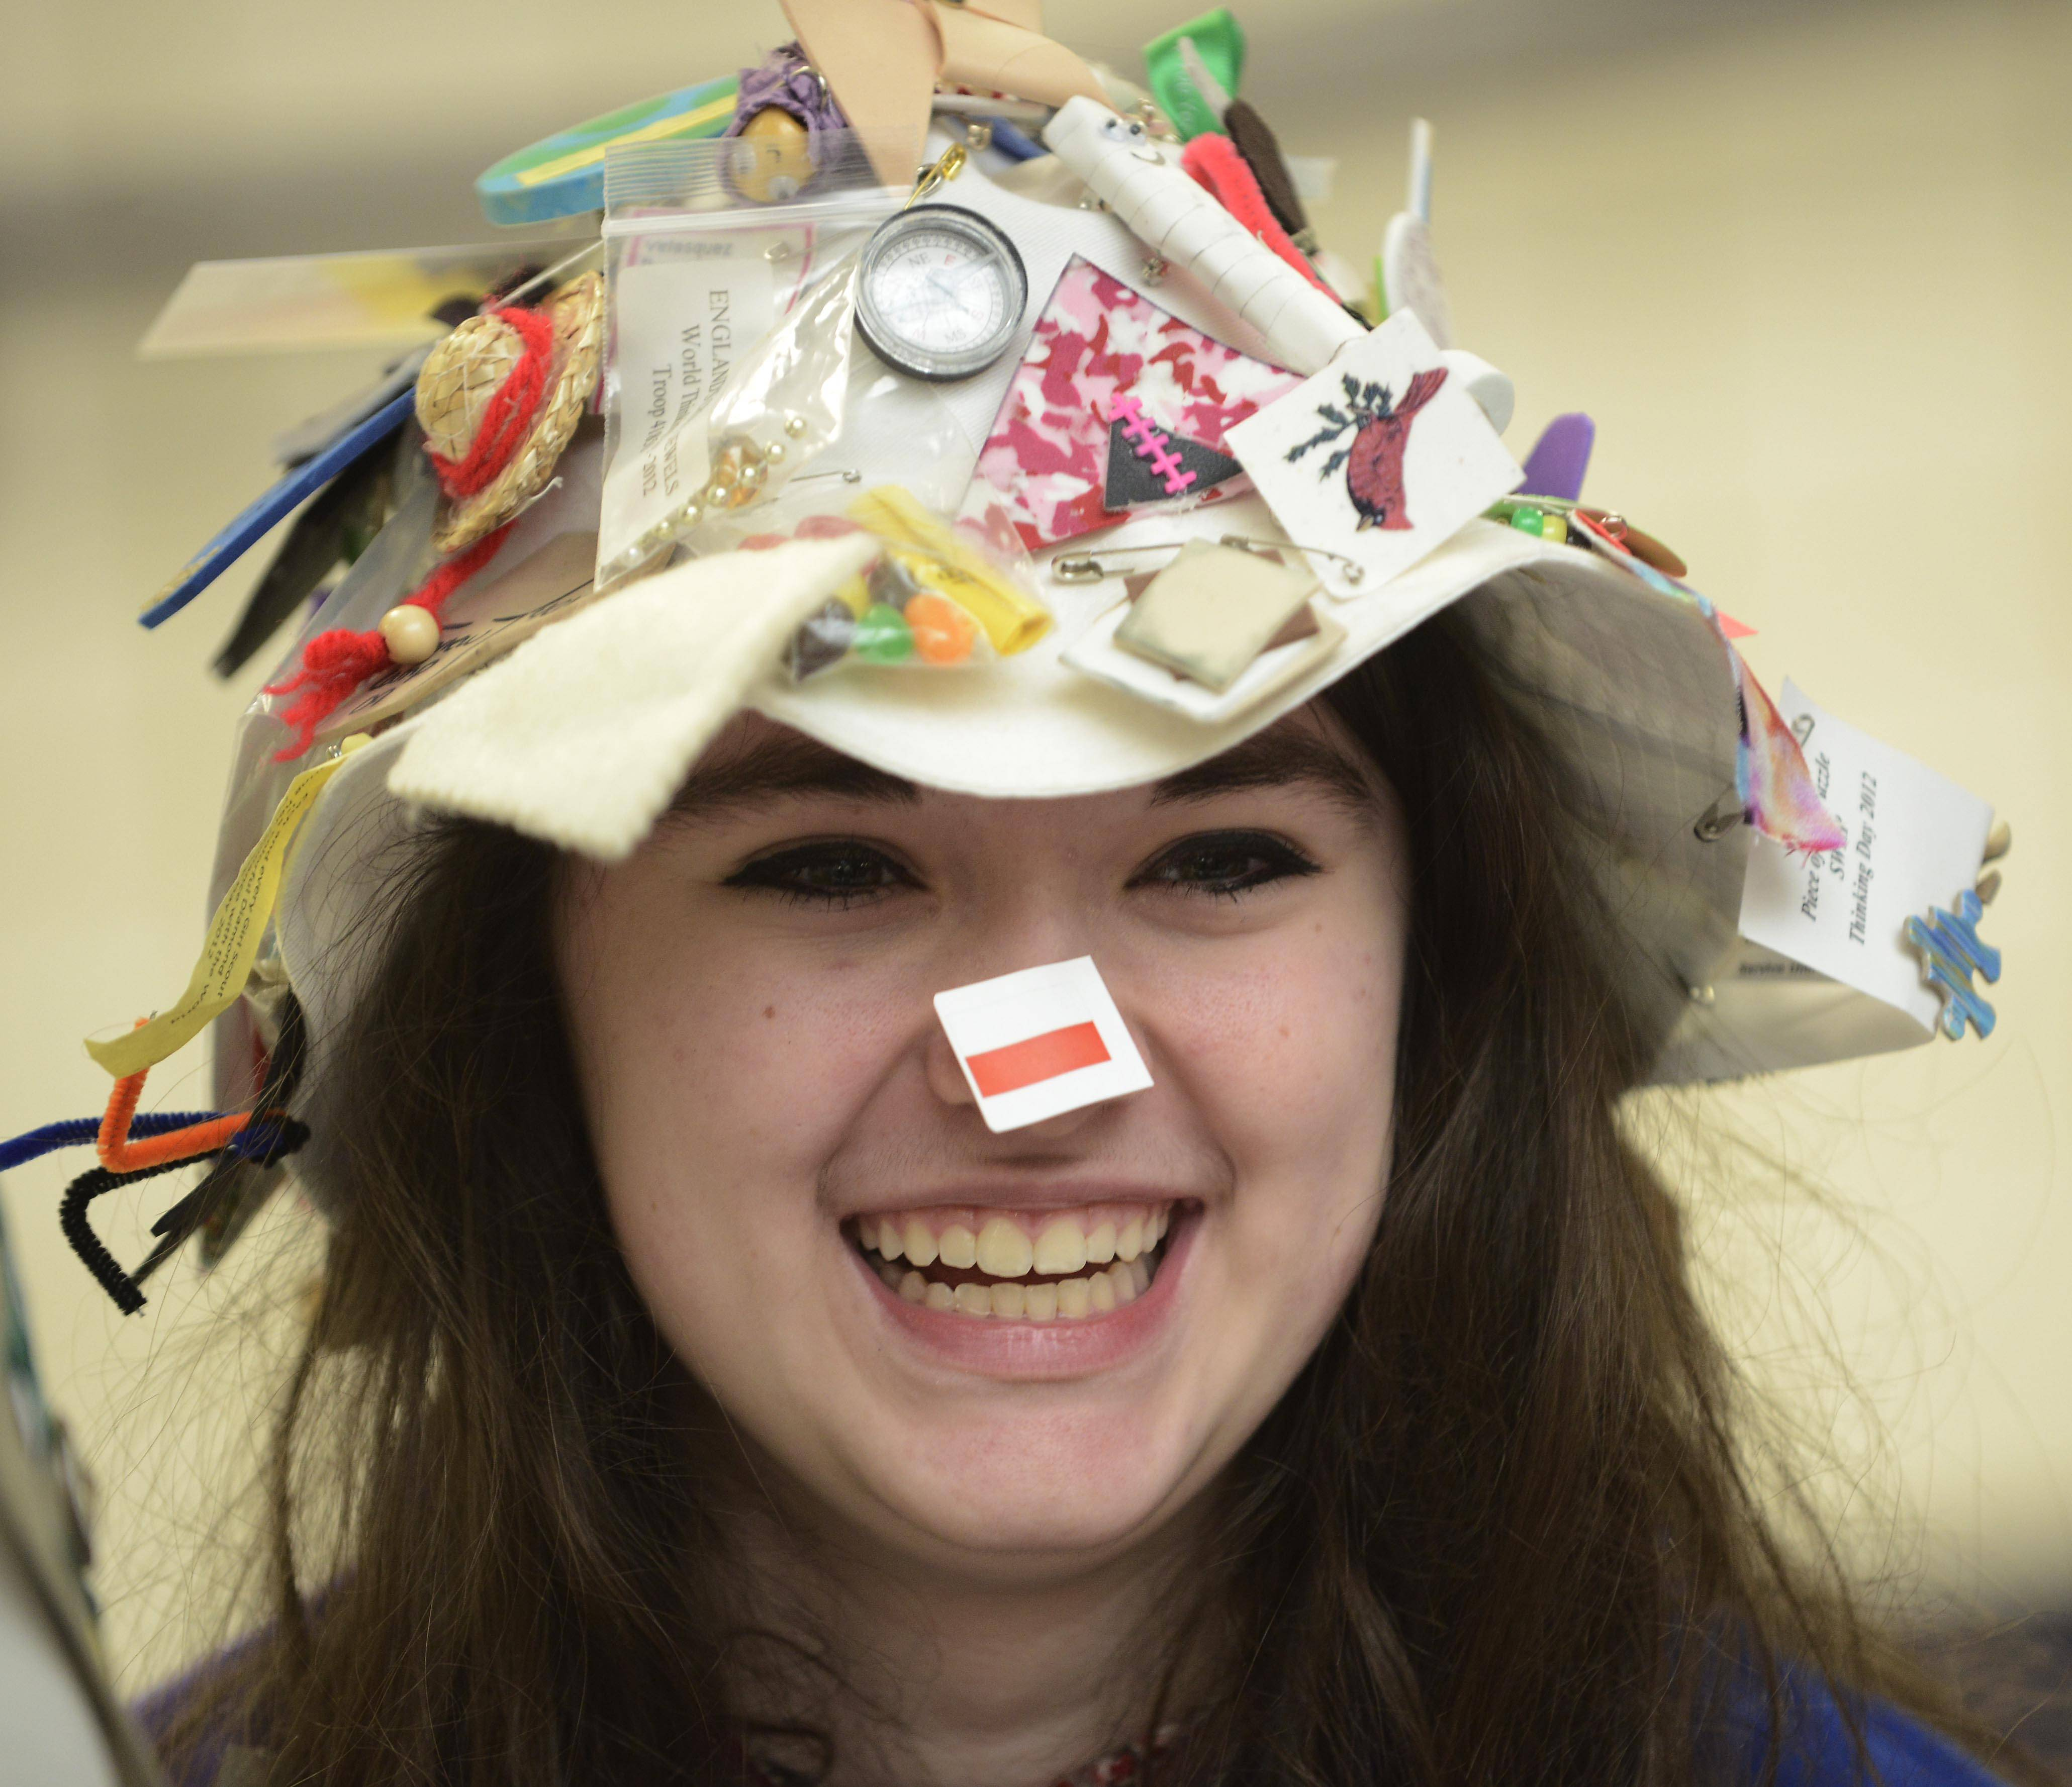 JOE LEWNARD/jlewnard@dailyherald.com Kara White, 14, of Hoffman Estates, and Schaumburg Girl Scout Troop 40172, wears a SWAP hat, which displays items she has collected from each station Saturday morning during International Thinking Day, an international festival of sisterhood in the Conant High School cafeteria.